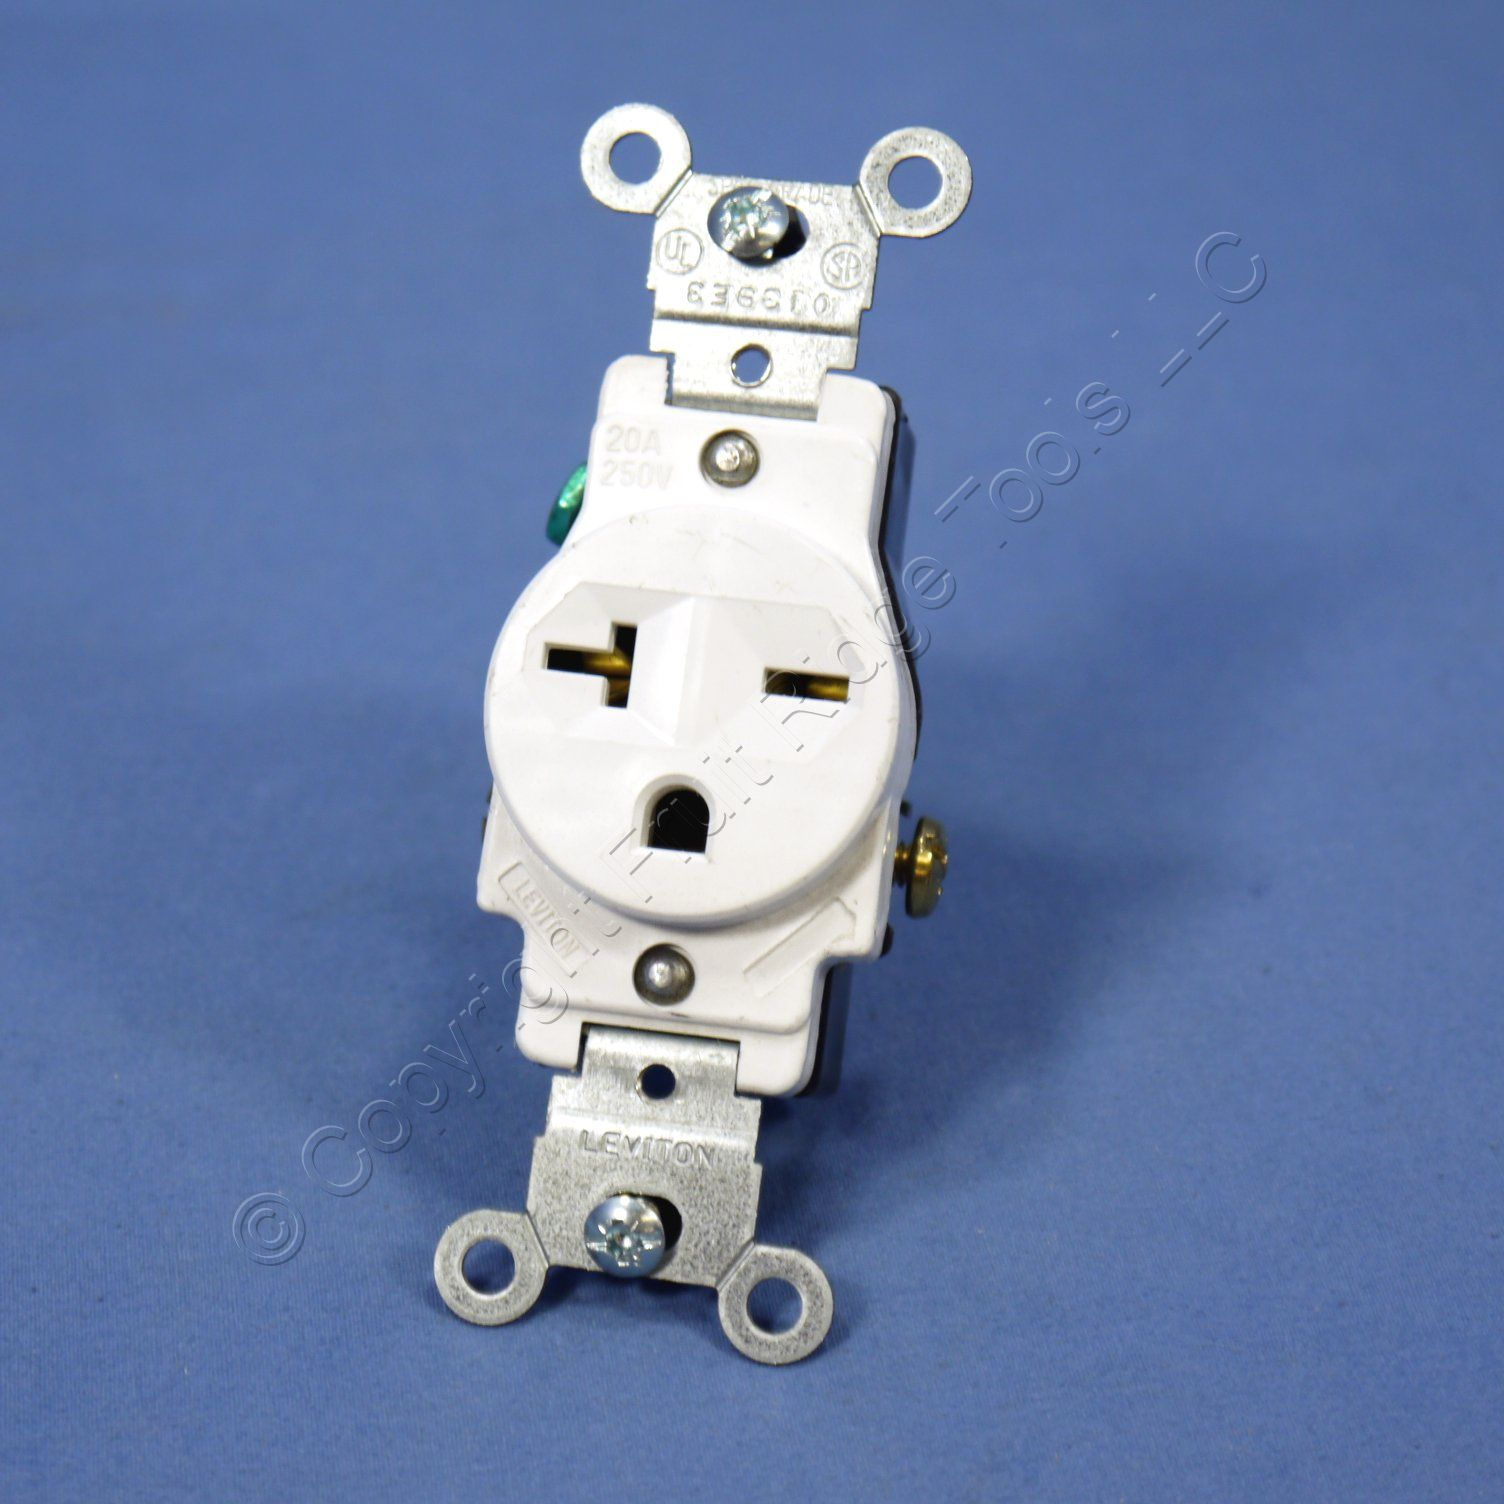 hight resolution of  shop leviton white 6 20 commercial single outlet receptacle nema 6 20r 20a 250v 5821 w bulk fruit ridge tools